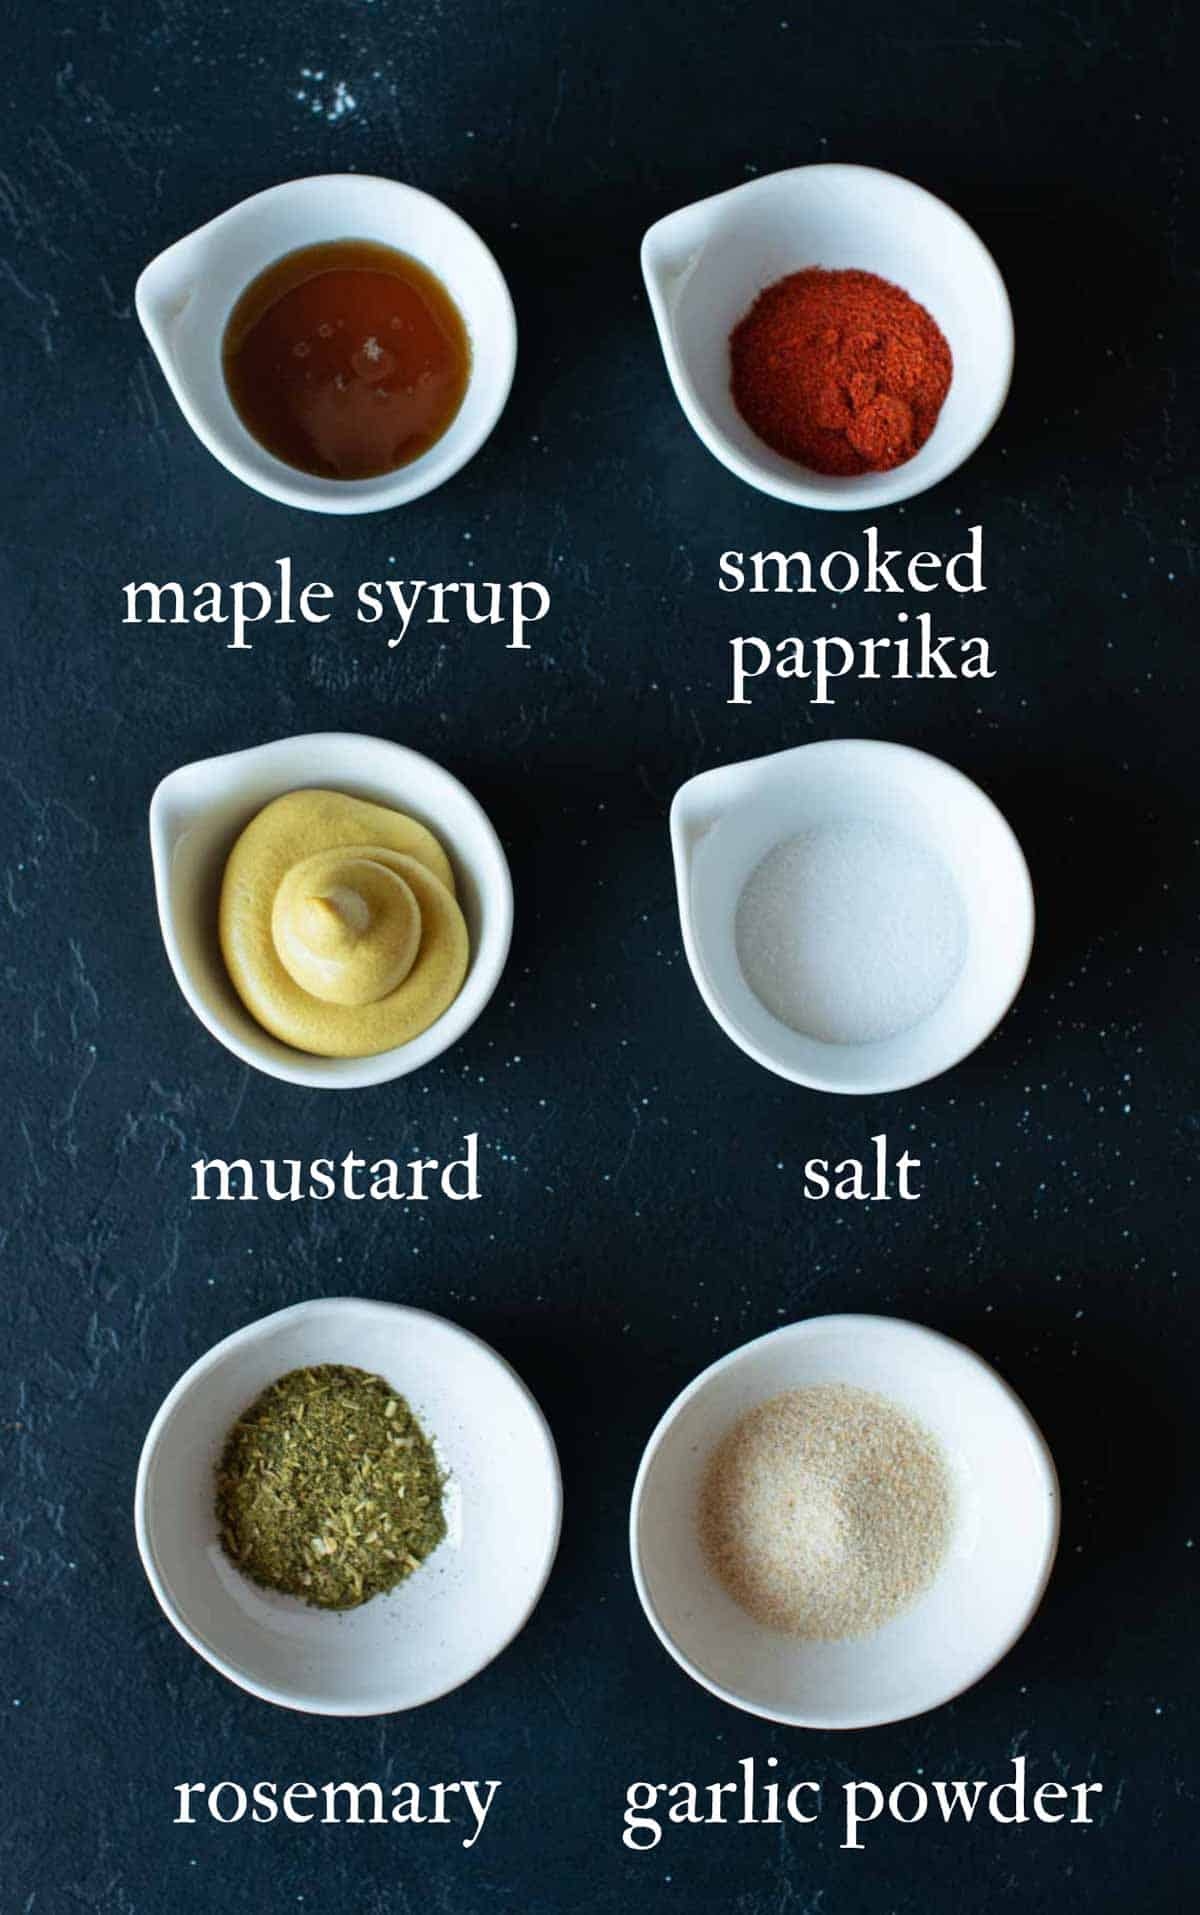 picture showing all the spices used in the recipe: maple syrup, paprika, mustard, salt, rosemary and garlic powder